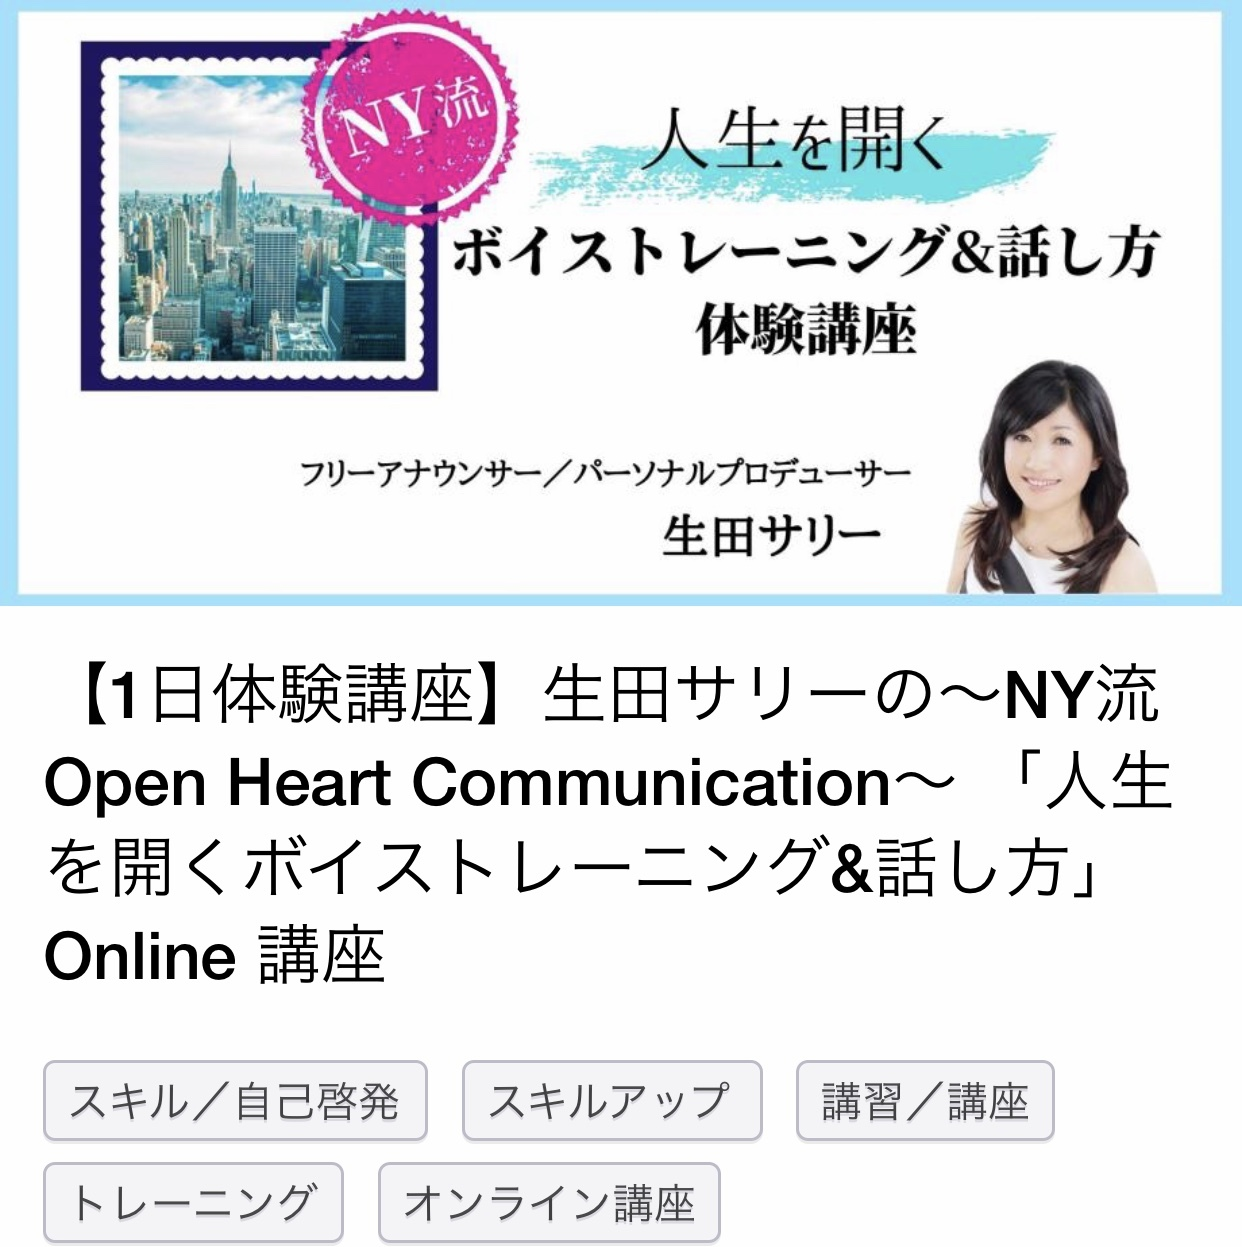 人生を開く! NY流 Open Heart Communication_e0142585_17383041.jpeg